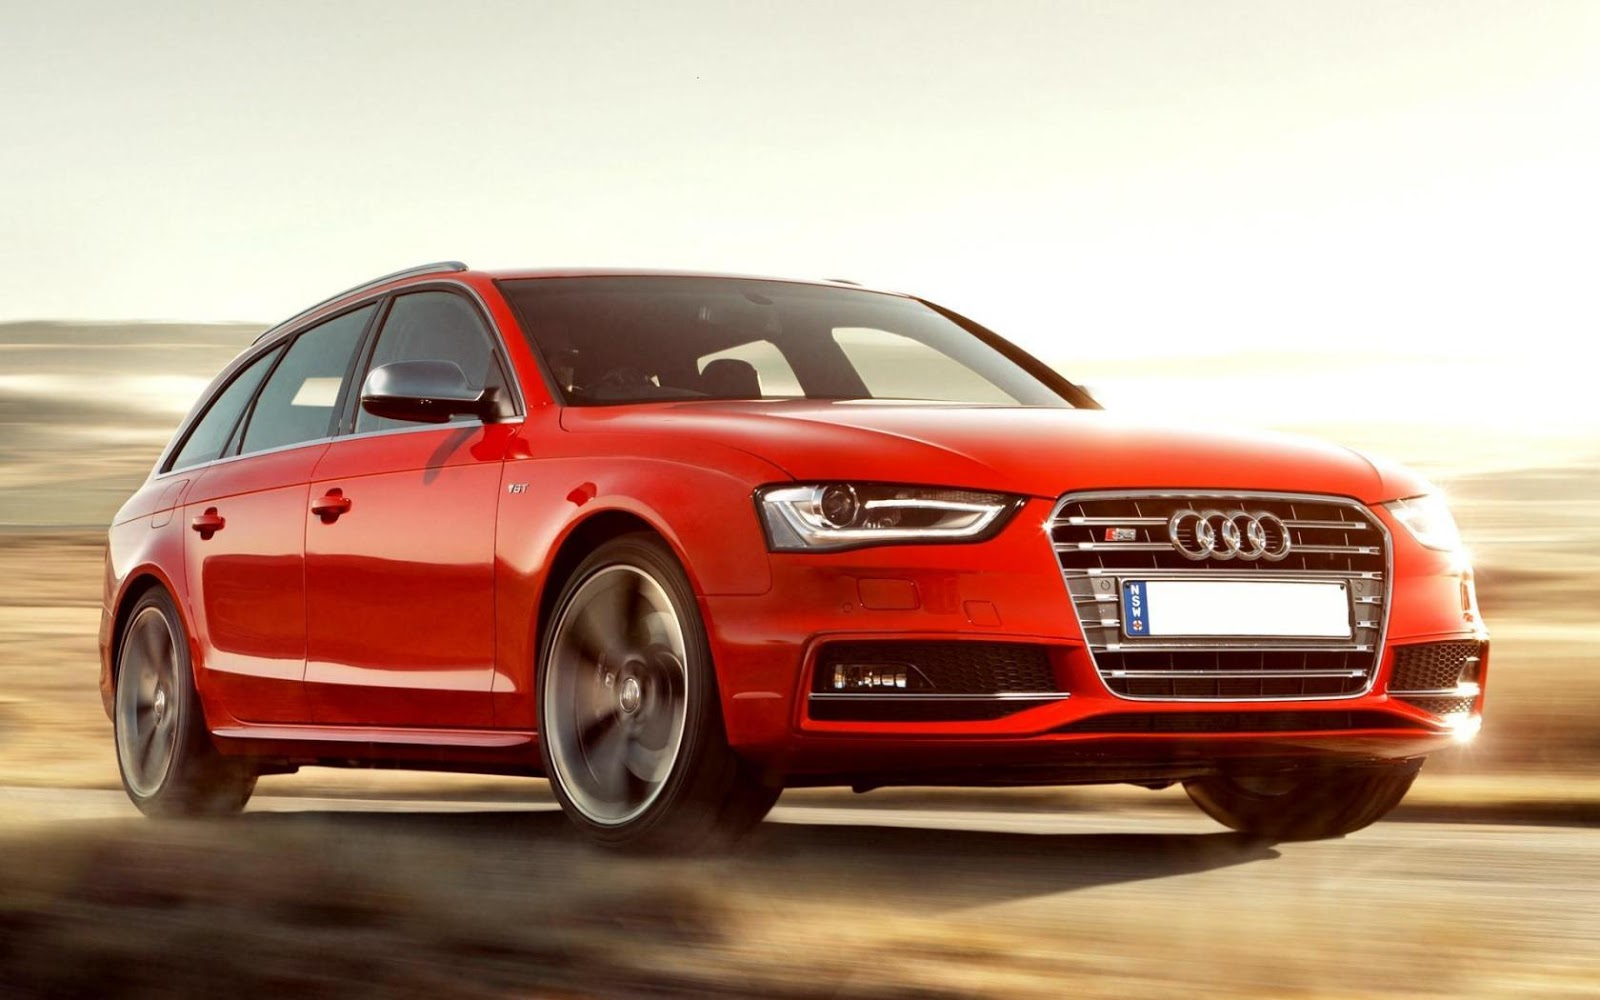 Audi Avant 2013 In Red Colour Wallpaper Cars Wallpapers Hd